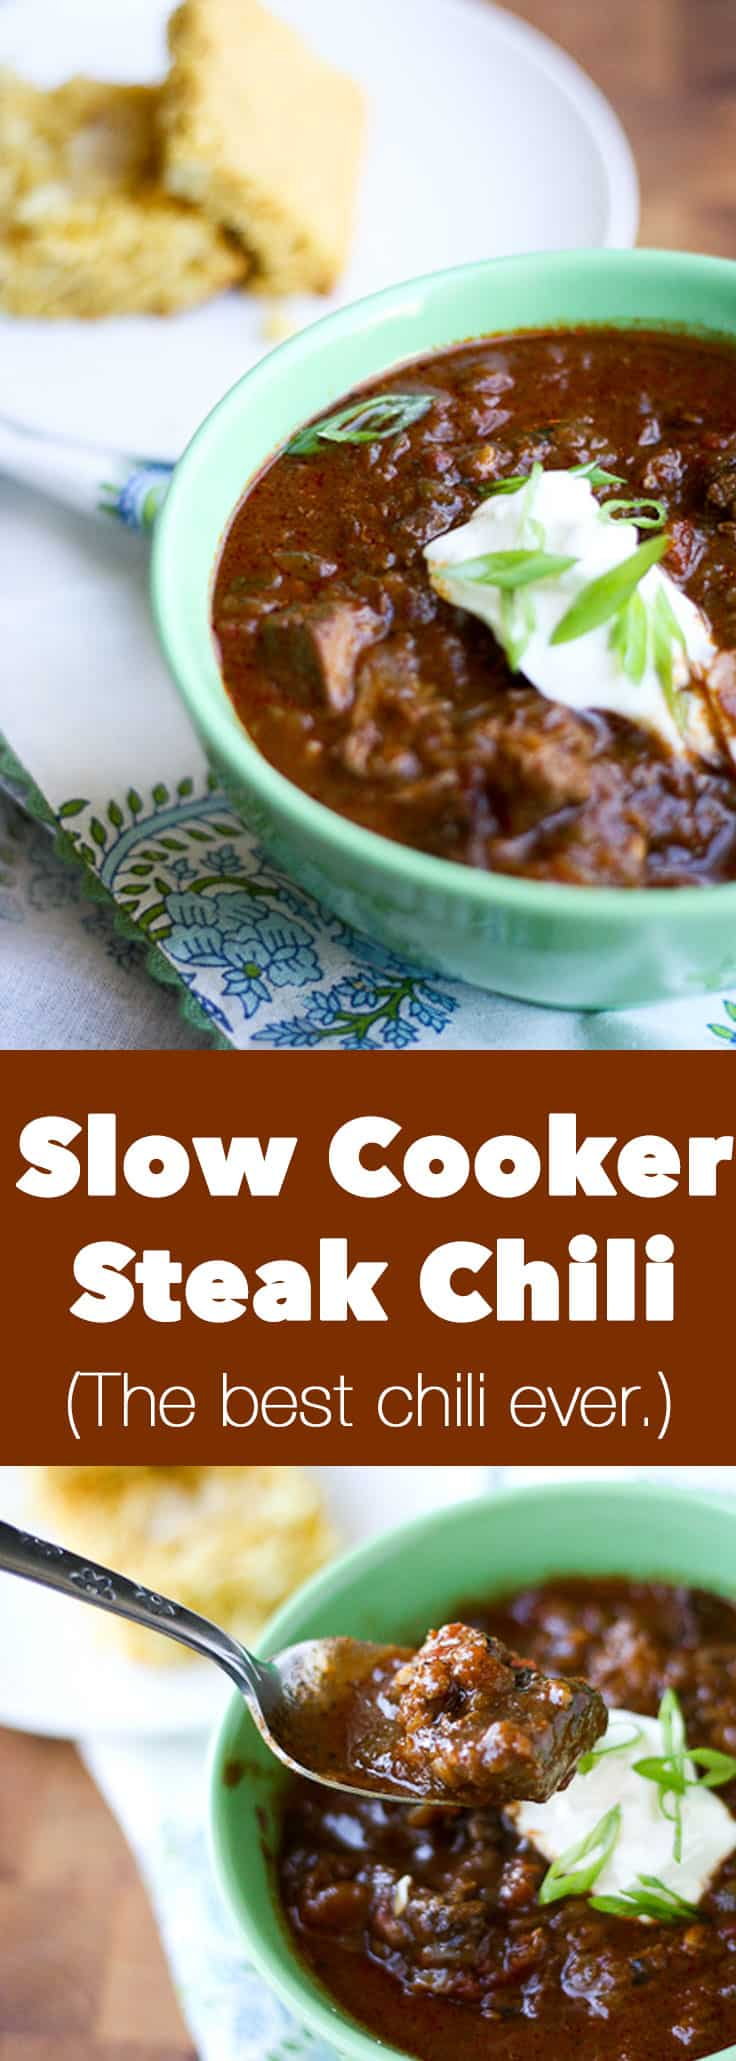 "This slow cooker steak chili is literally the best chili I've eaten in my life. It has won so many chili competitions and is my go-to recipe for a solid, ""fancy"" chili to impress! - www.PerrysPlate.com 